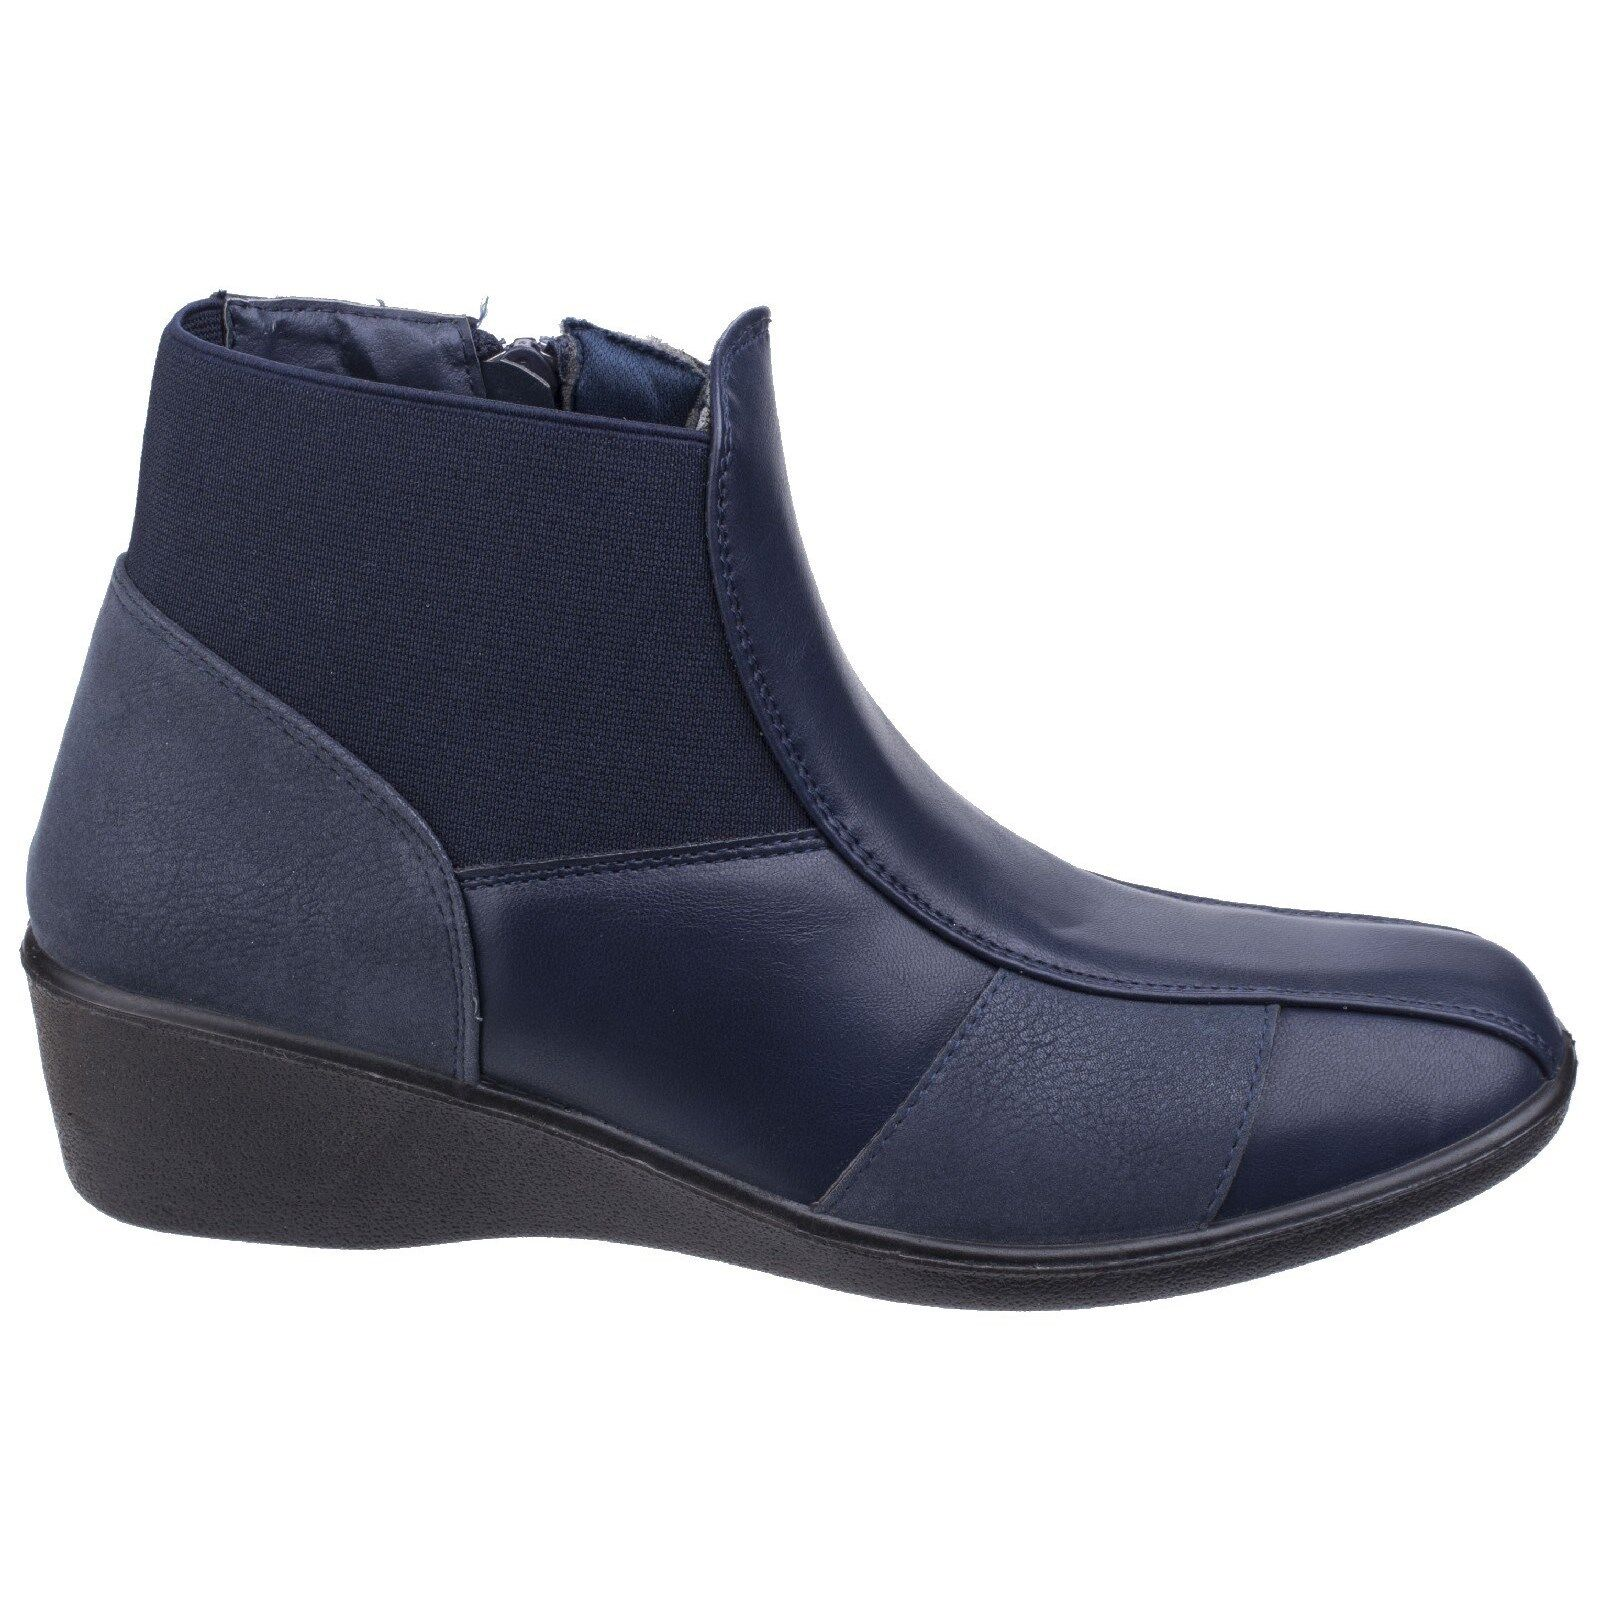 Fleet & Foster Foster Foster Festa Ankle Boots Low Wedge Pull On Ladies boots UK 3-8 Womens ef20d6